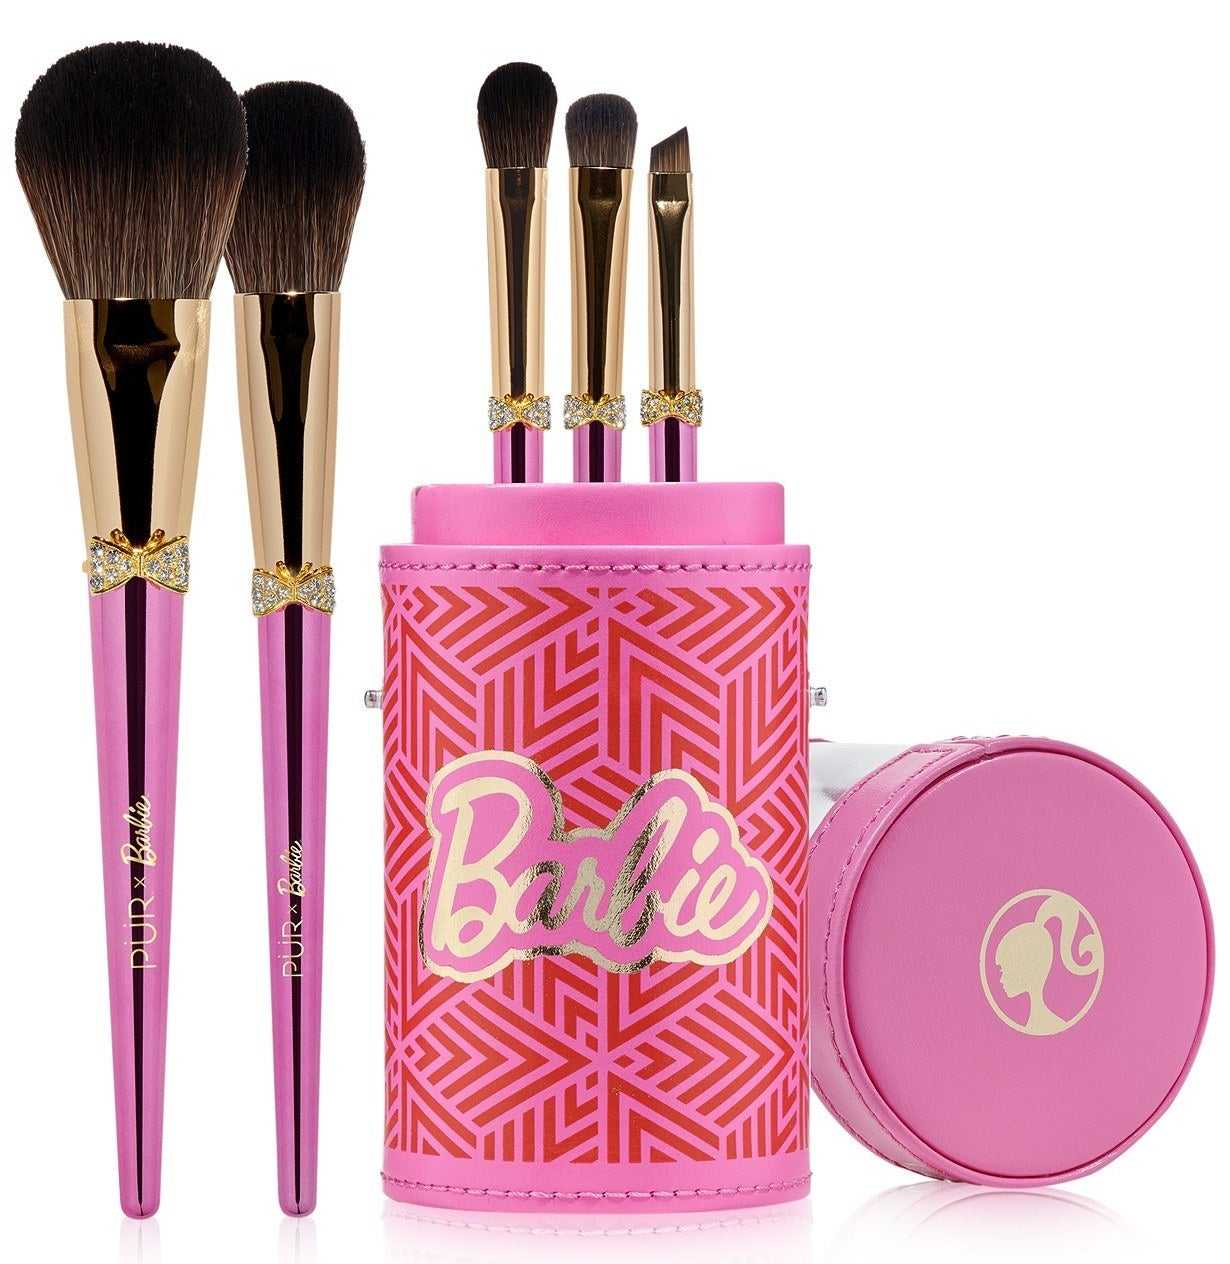 The six included brushes which are finished with pink and gold metallics and crystal bows